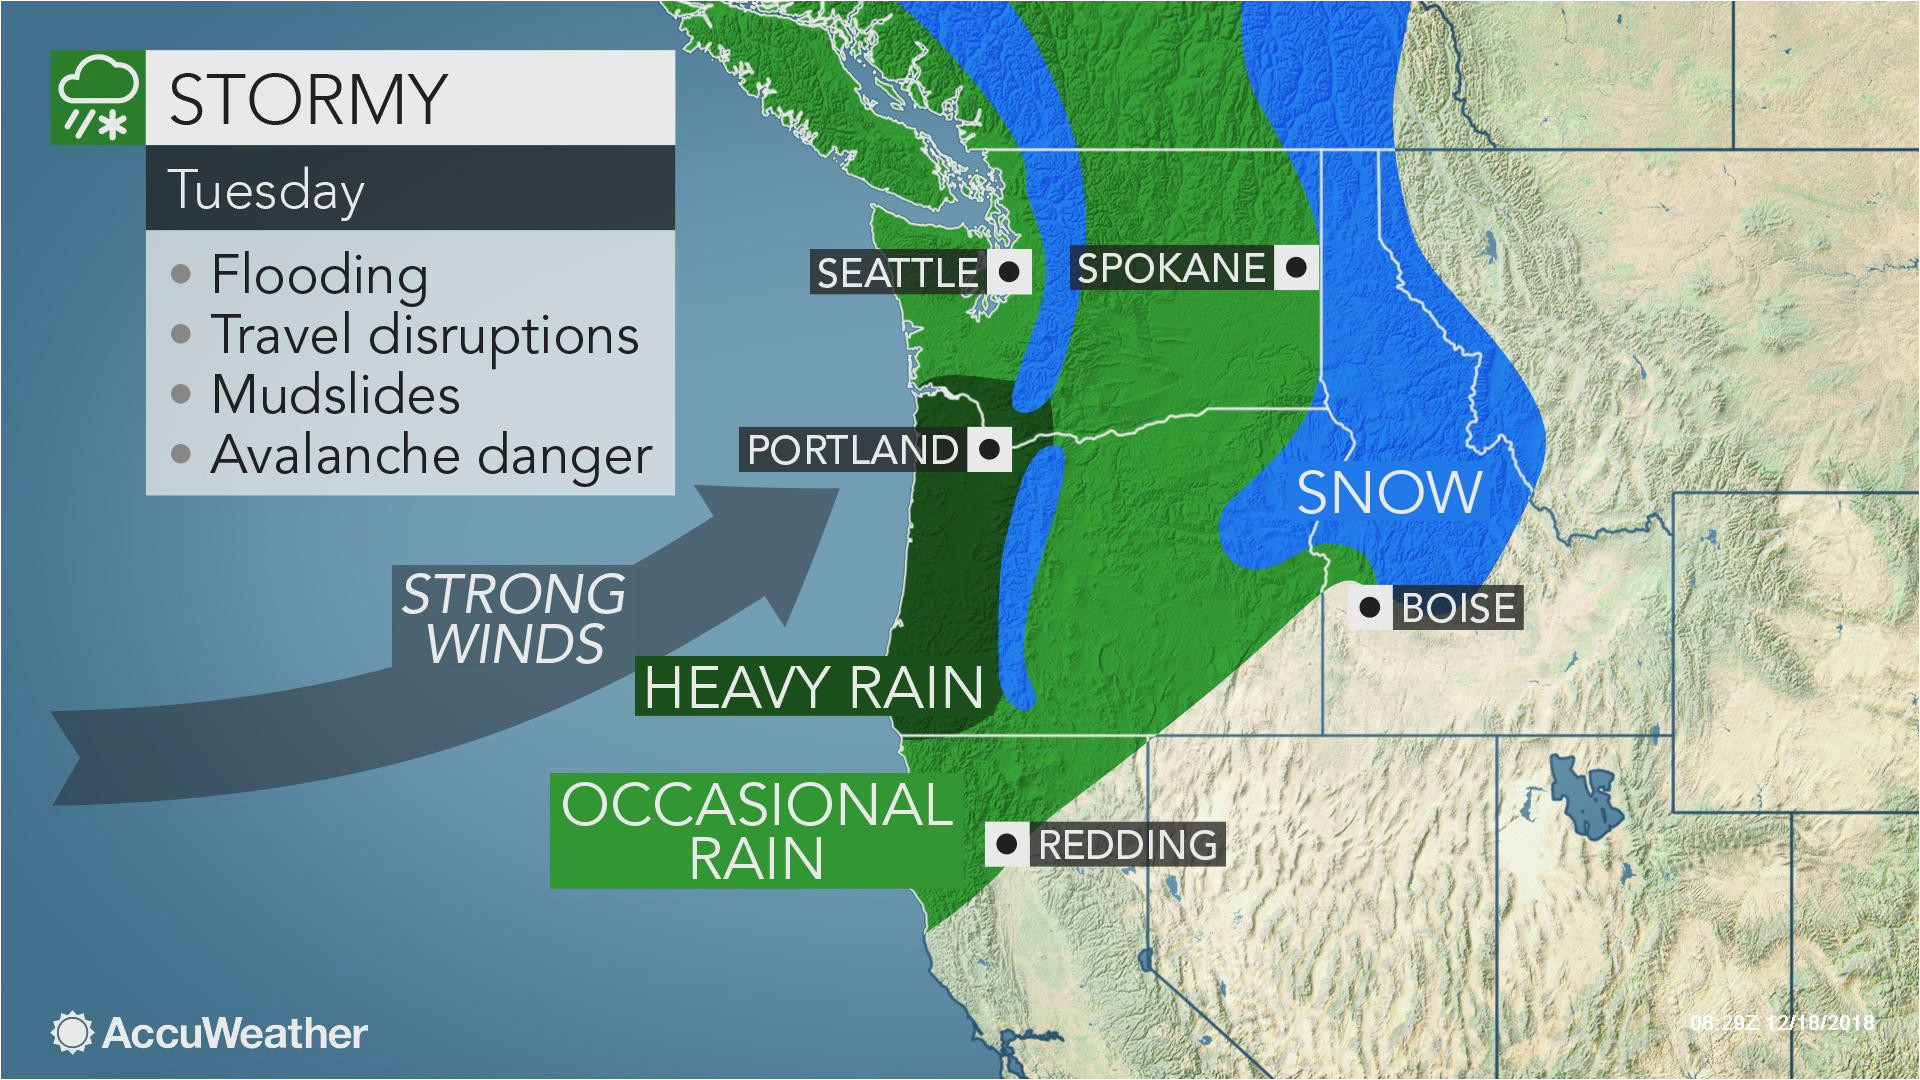 Oregon Rainfall Map Oregon Rainfall Map Early Week Storm May Be Strongest yet This